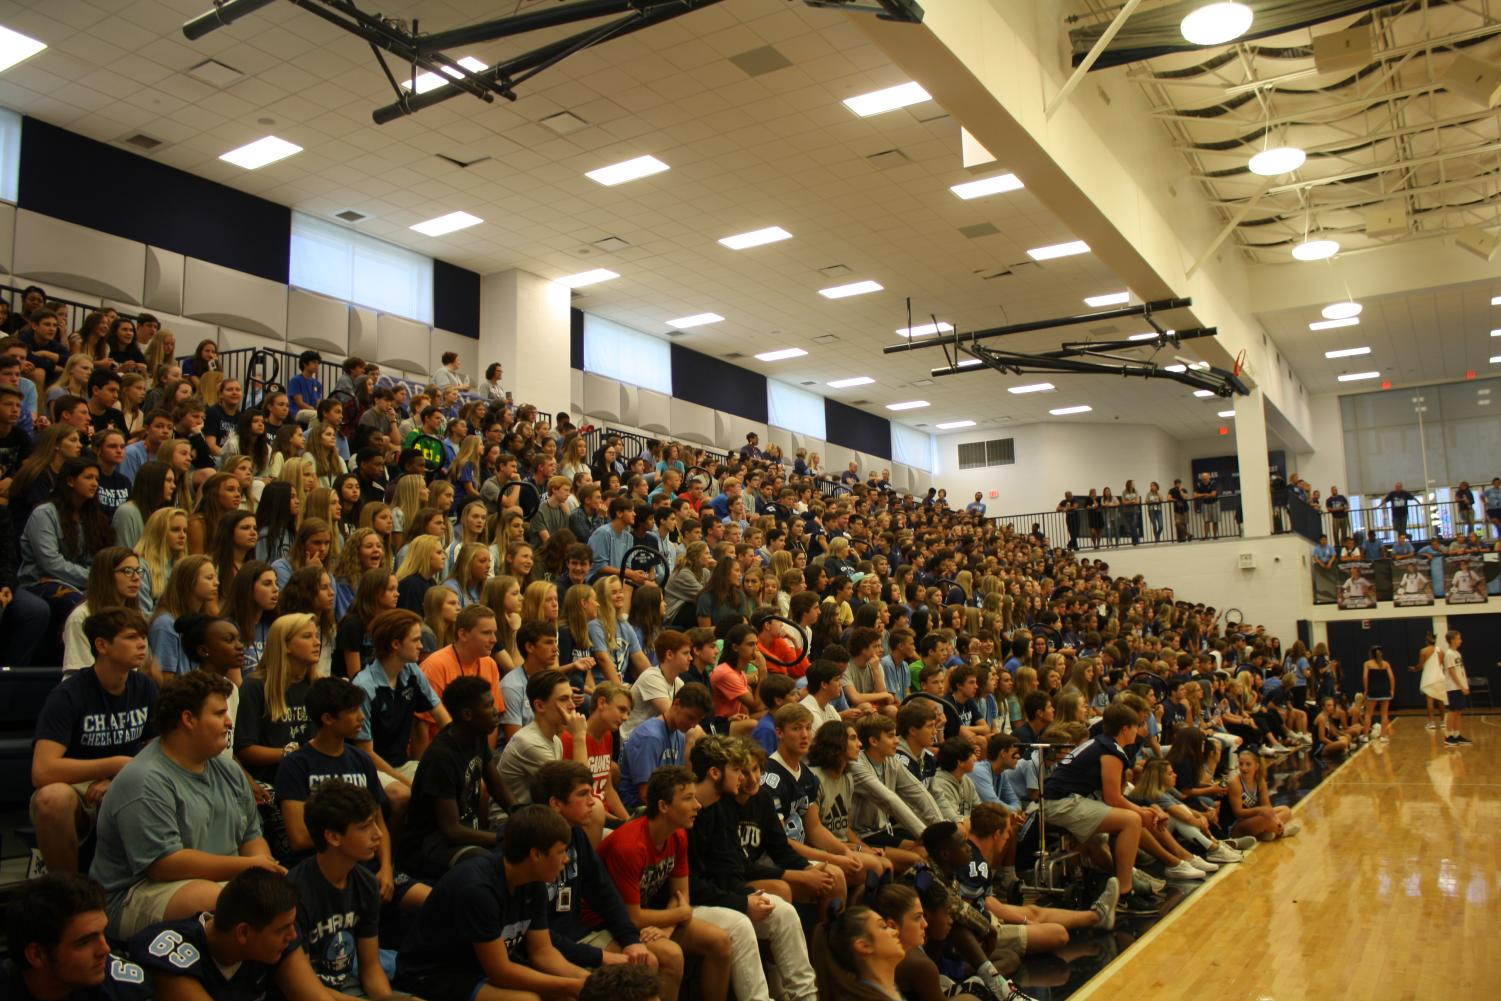 Sophomores+and+Freshmen+wait+for+the+start+of+the+Pep+Rally+Games.